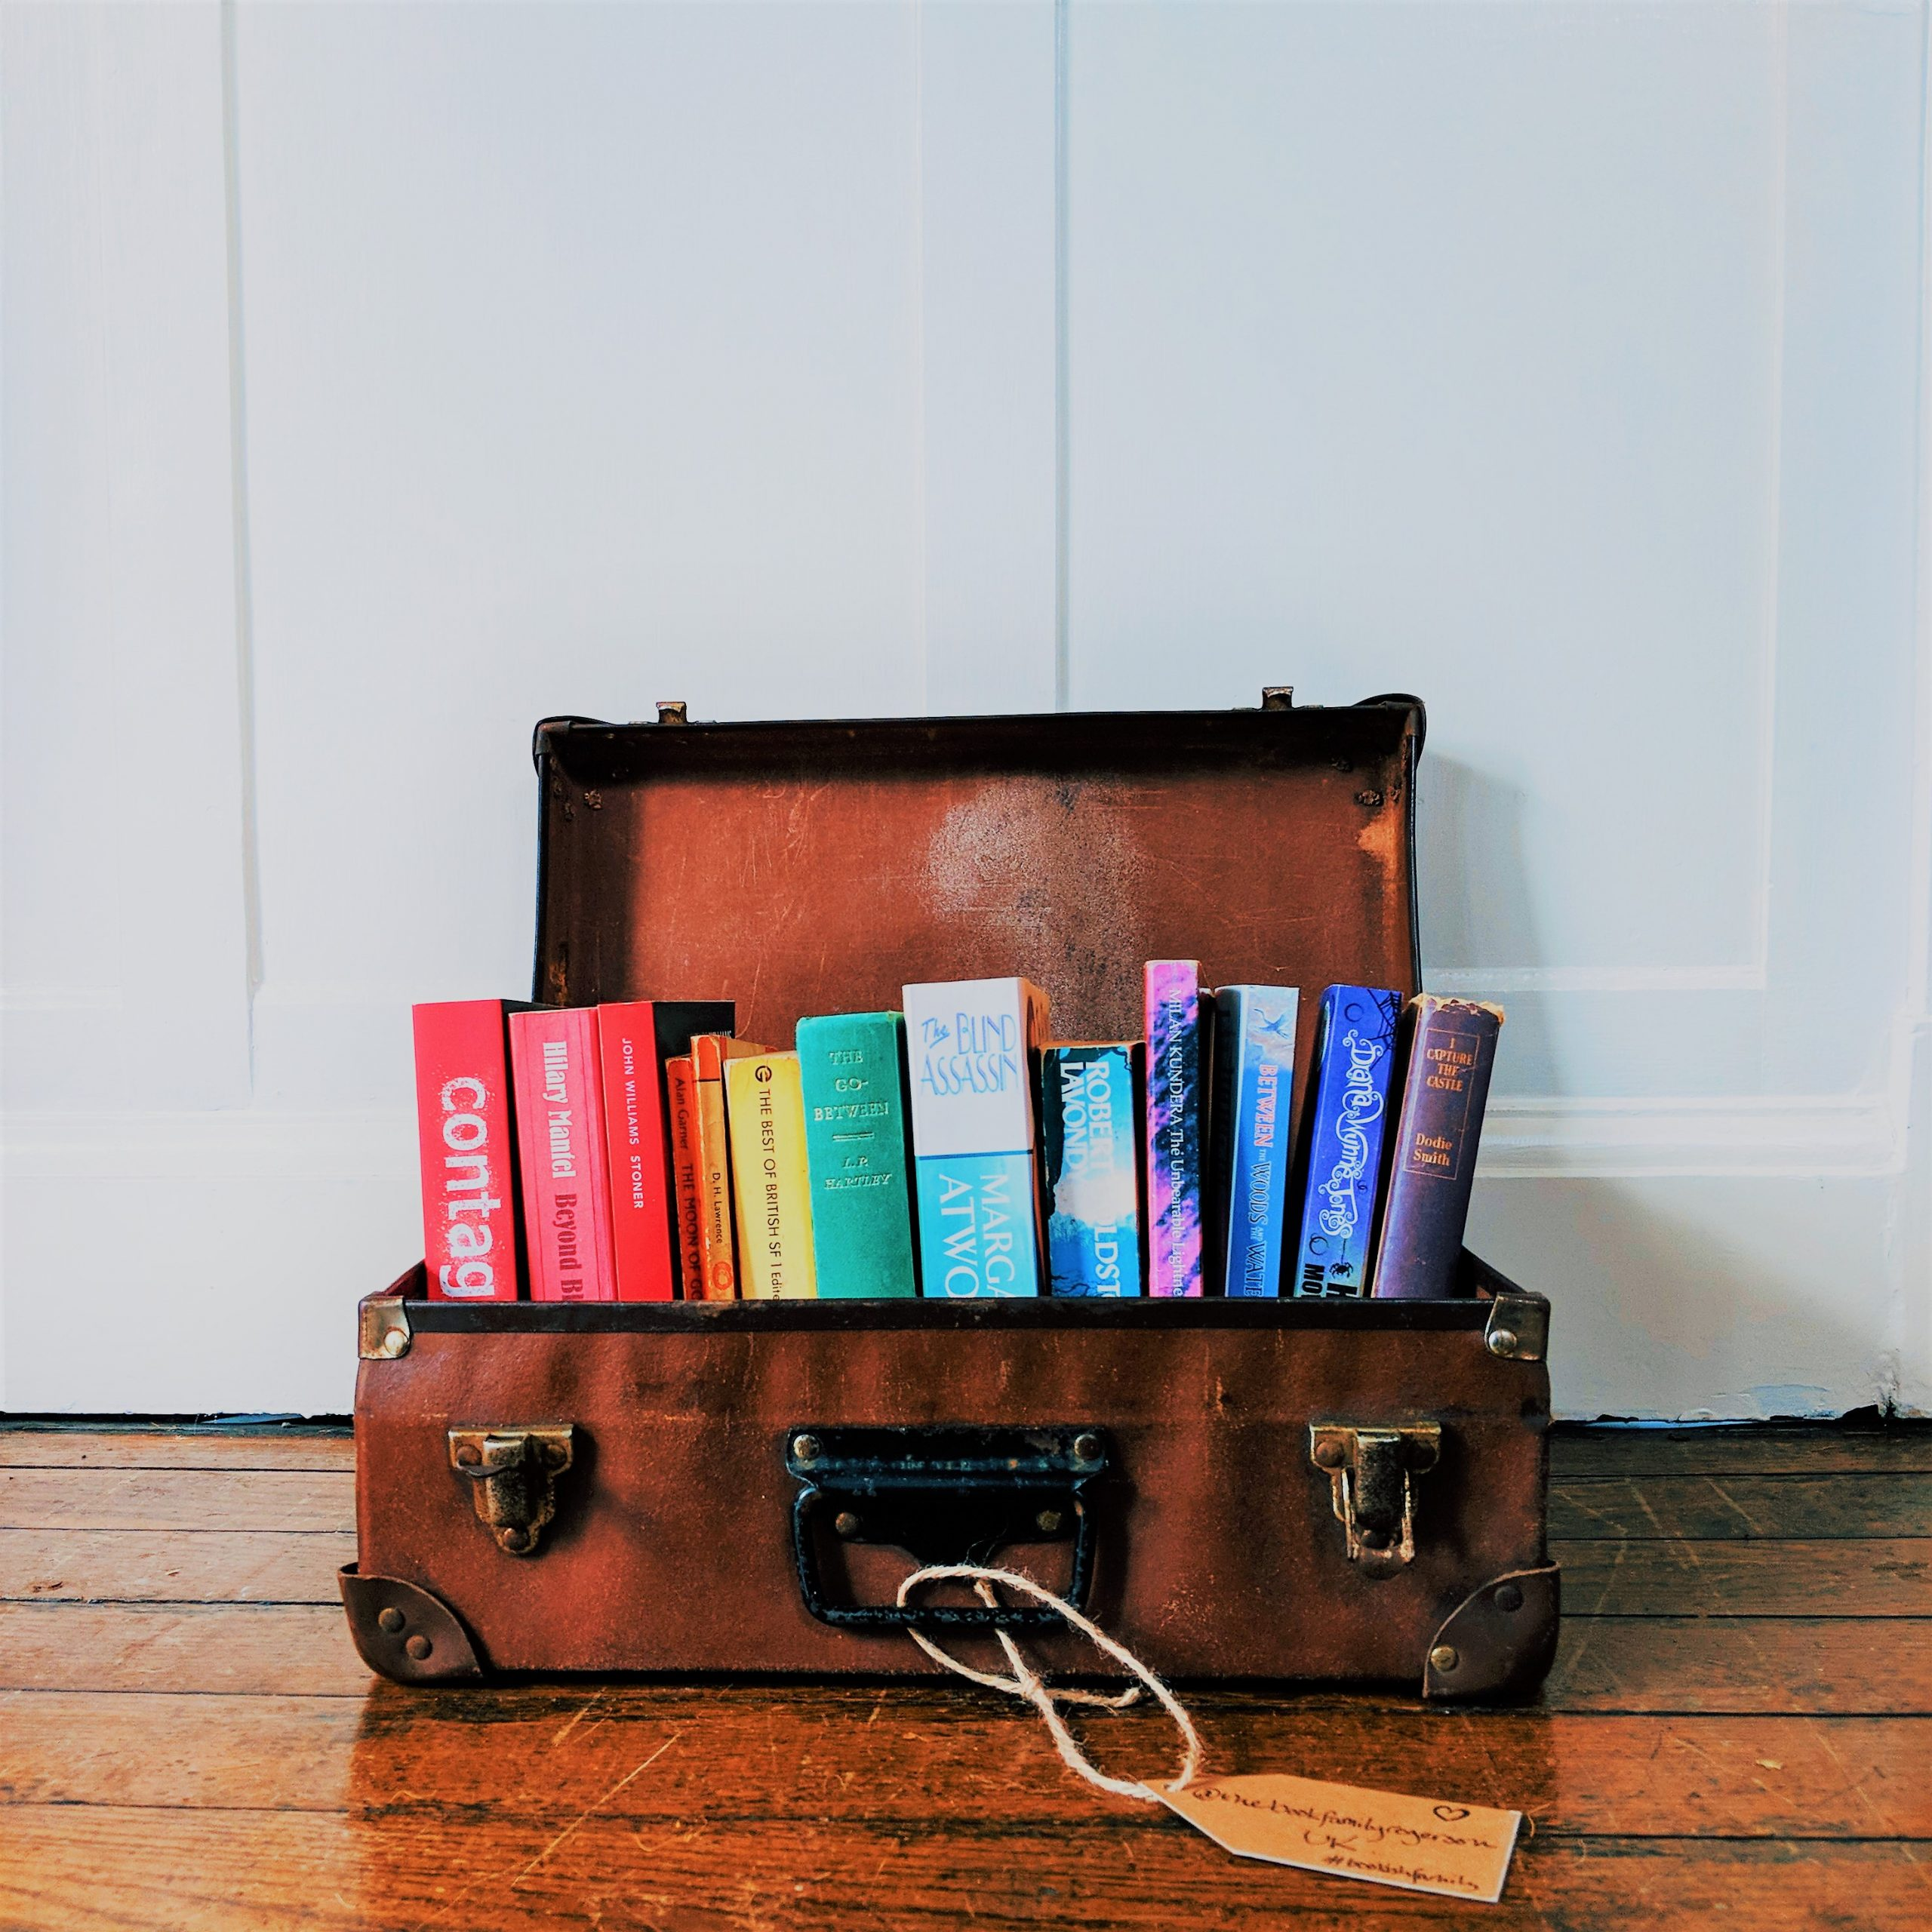 A small suitcase of books